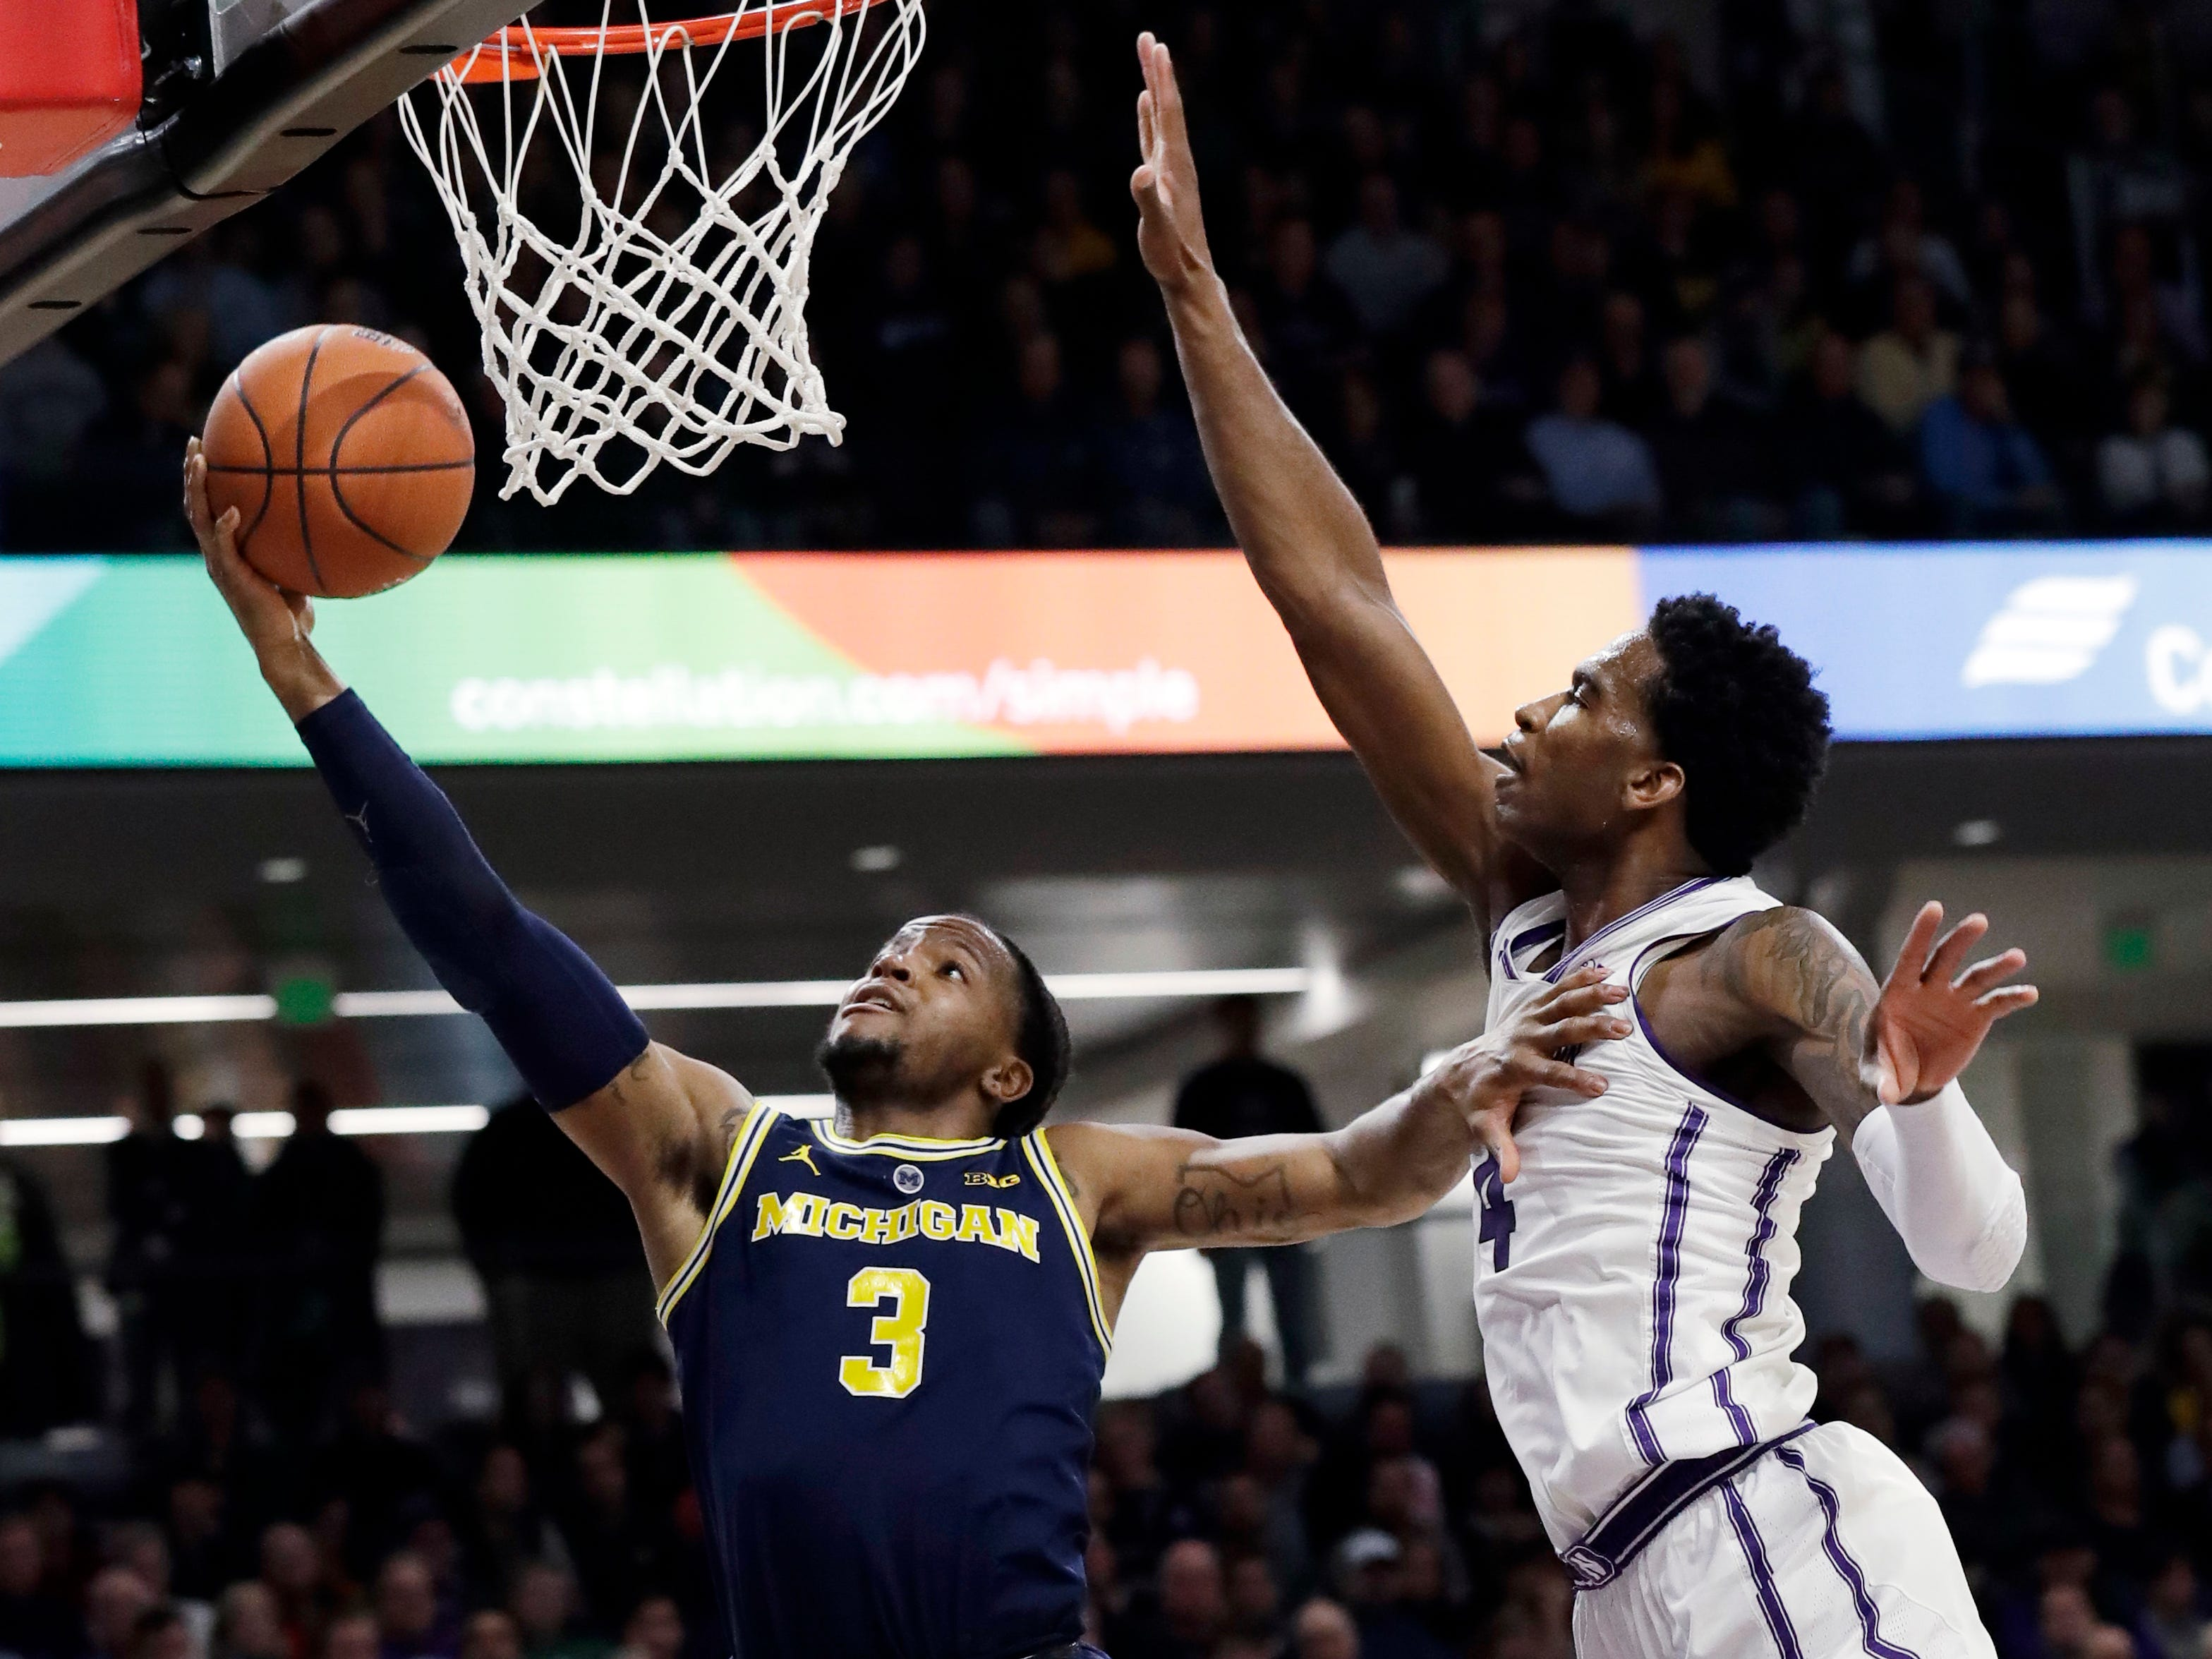 Michigan guard Zavier Simpson, left, shoots against Northwestern forward Vic Law during the first half.